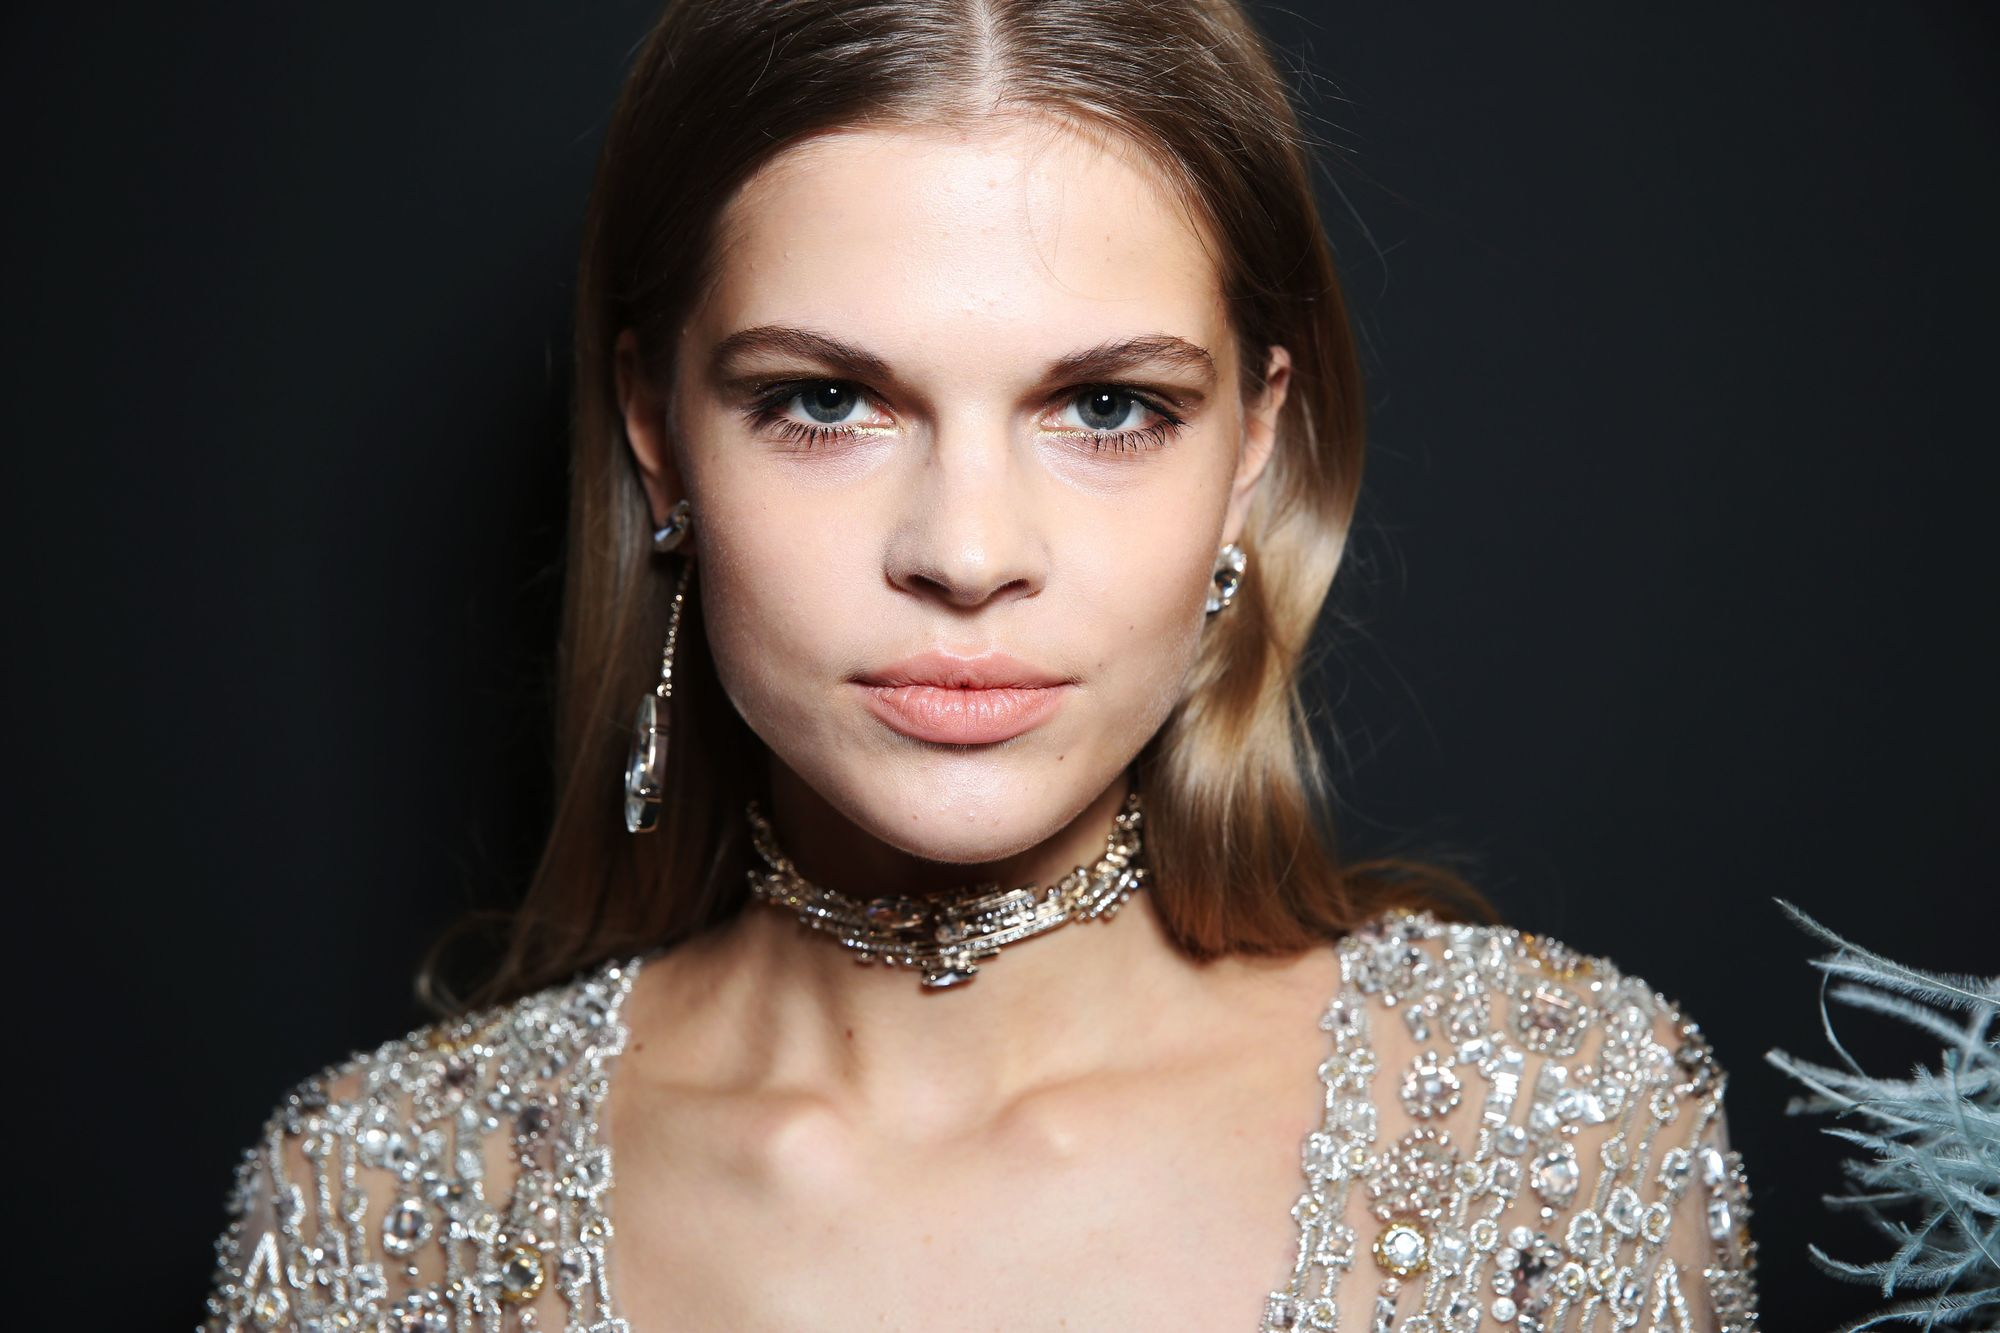 prom hairstyles: close up shot of model with polished waves hair, wearing glittery gown and neck choker, backstage at a show